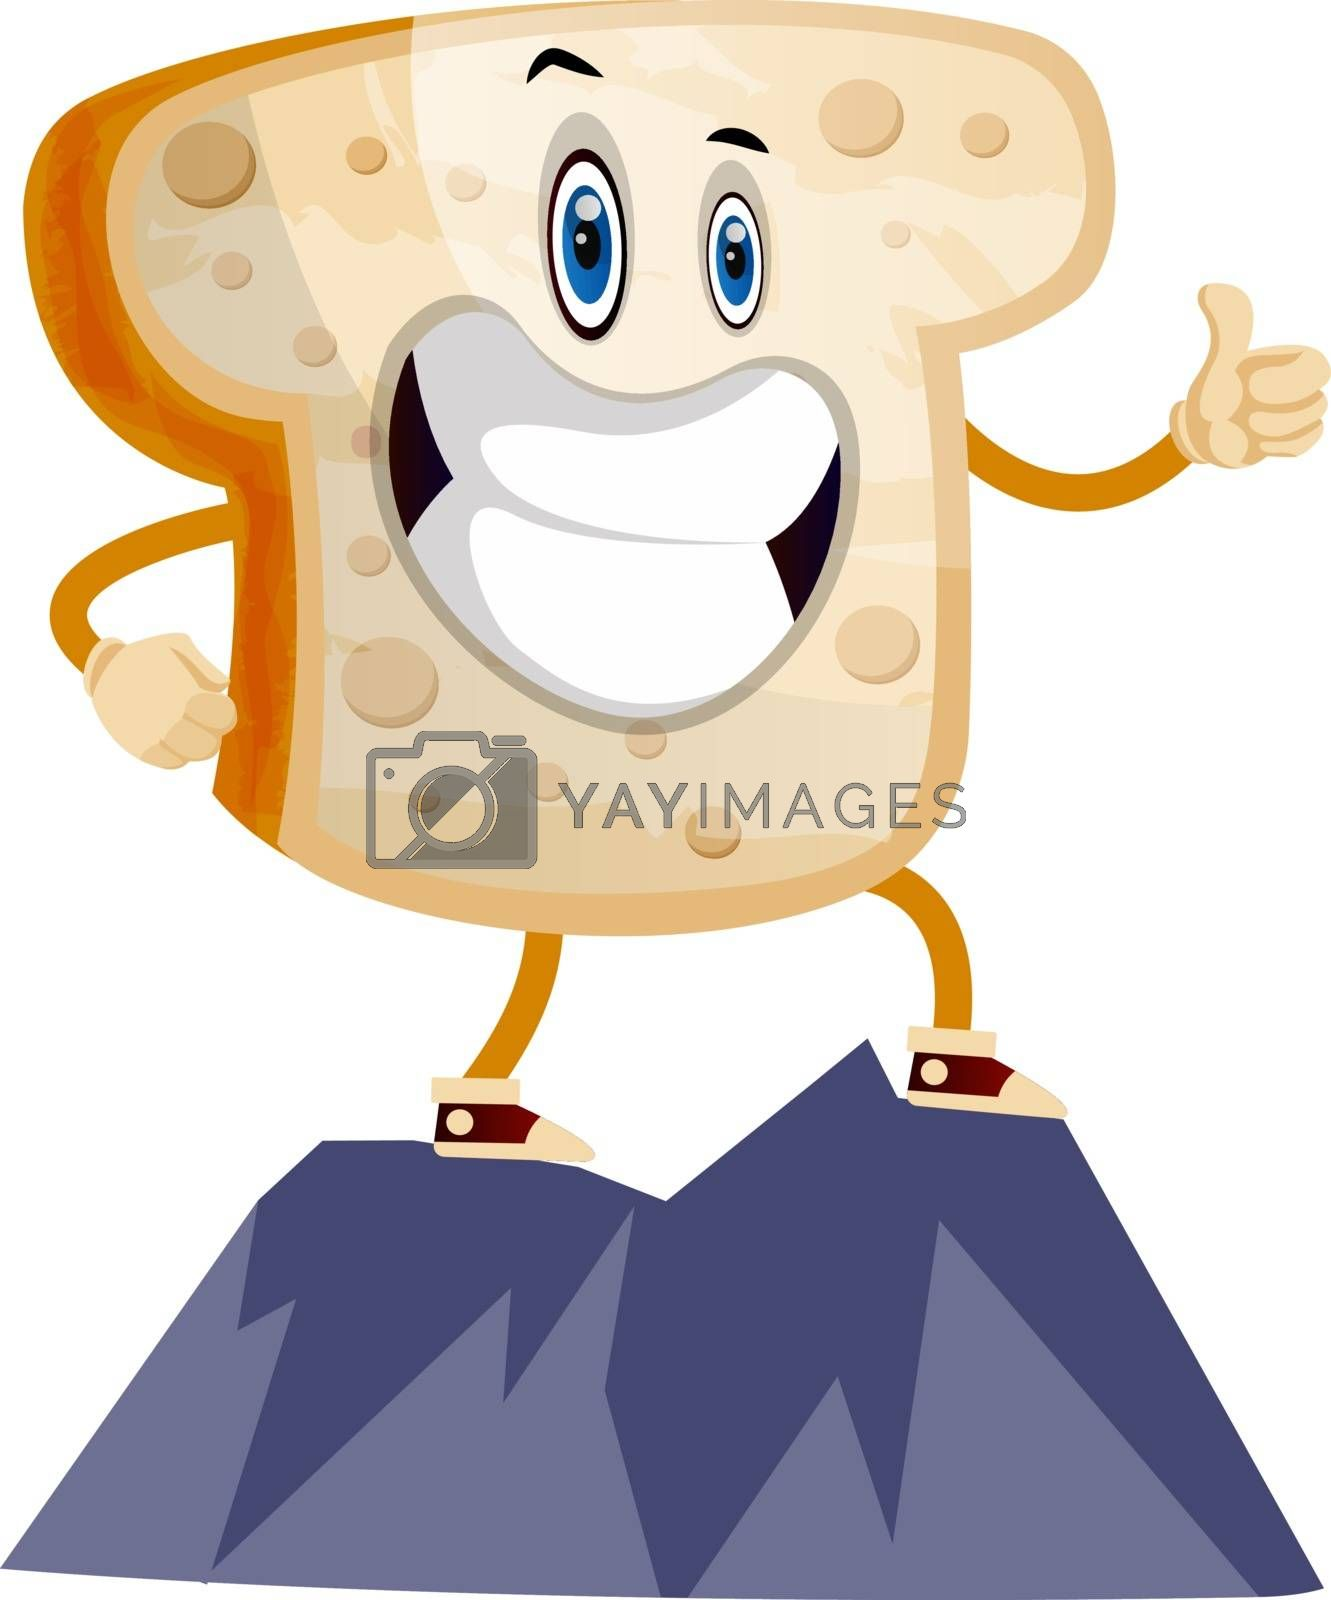 Royalty free image of Toast on Mountain illustration vector on white background by Morphart